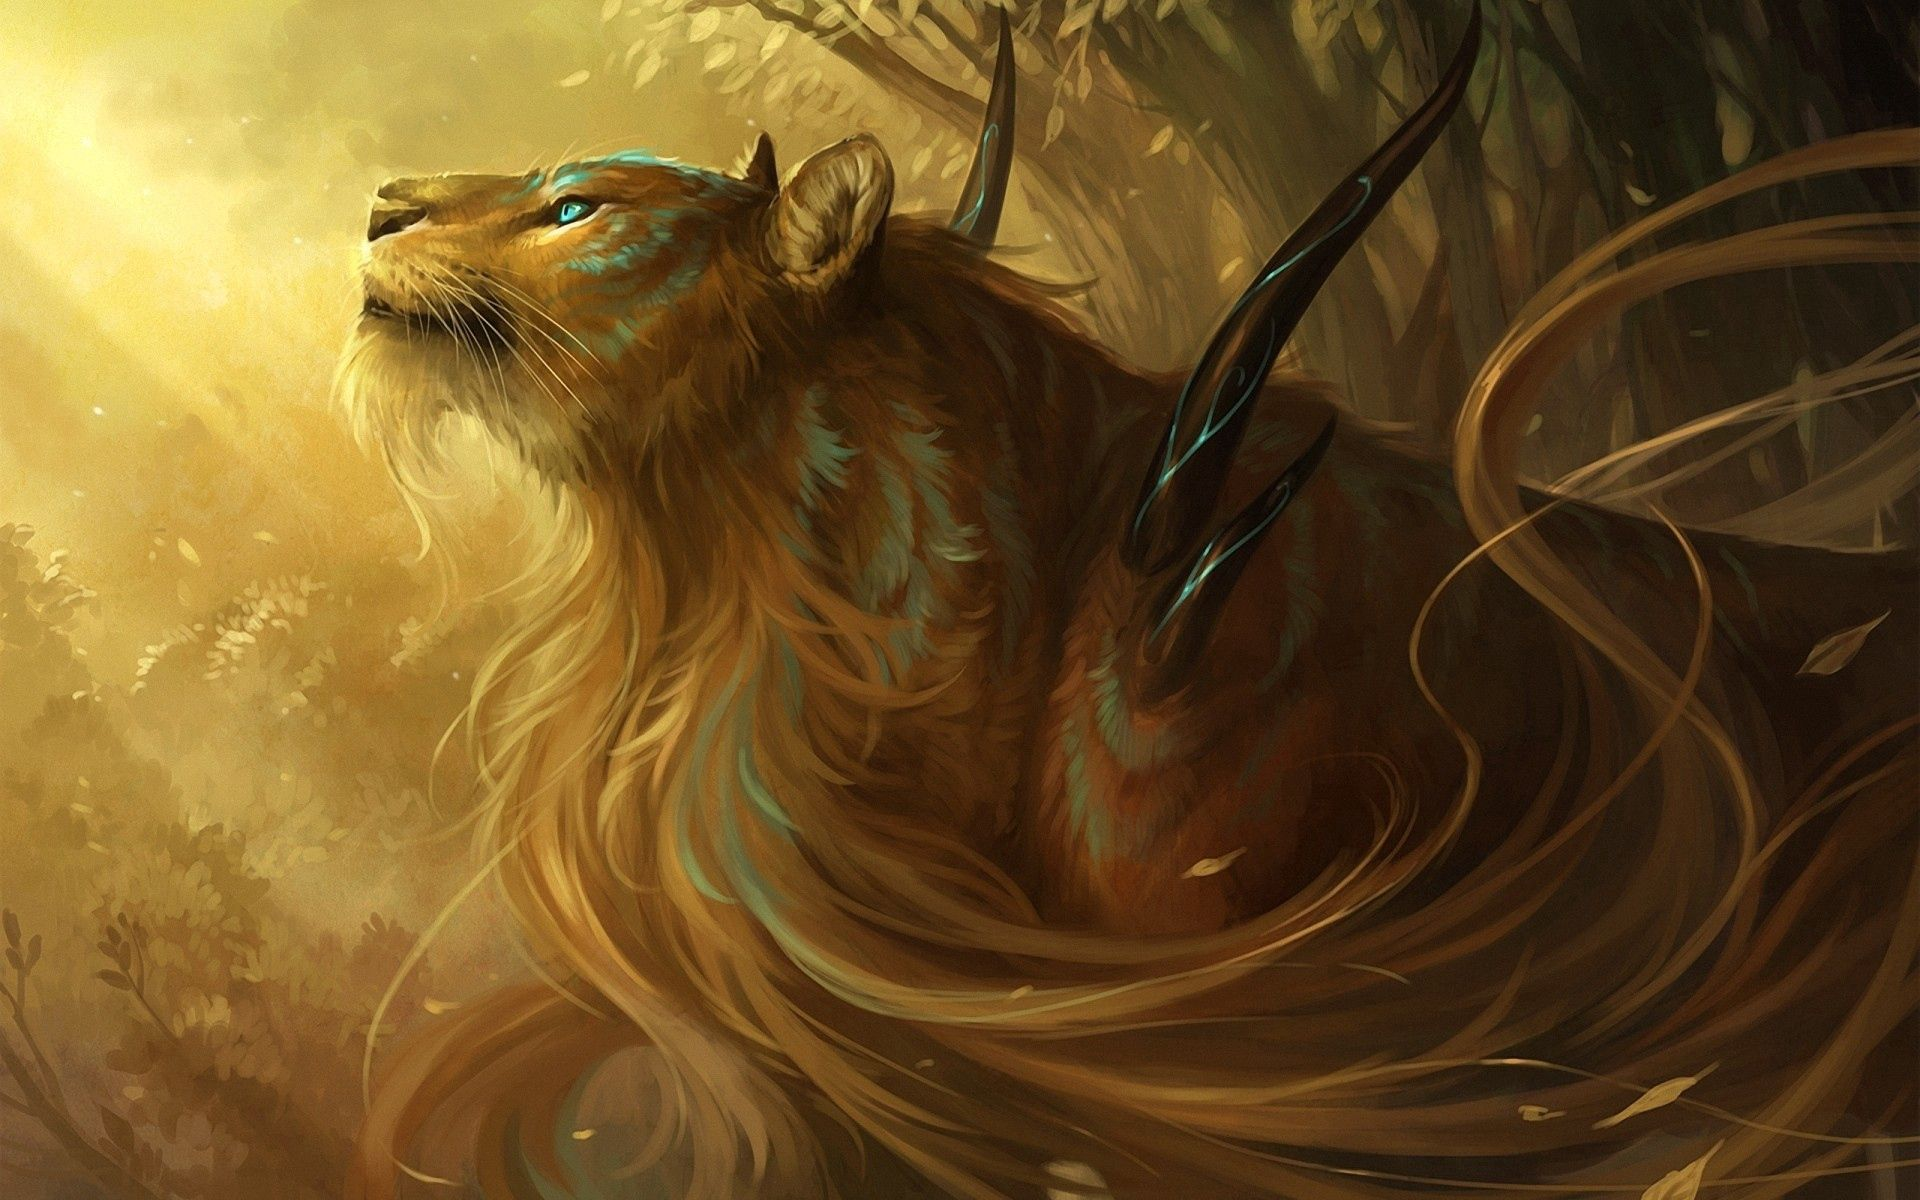 76889 download wallpaper Fantasy, Tiger, Thorns, Spikes, Being, Creature screensavers and pictures for free